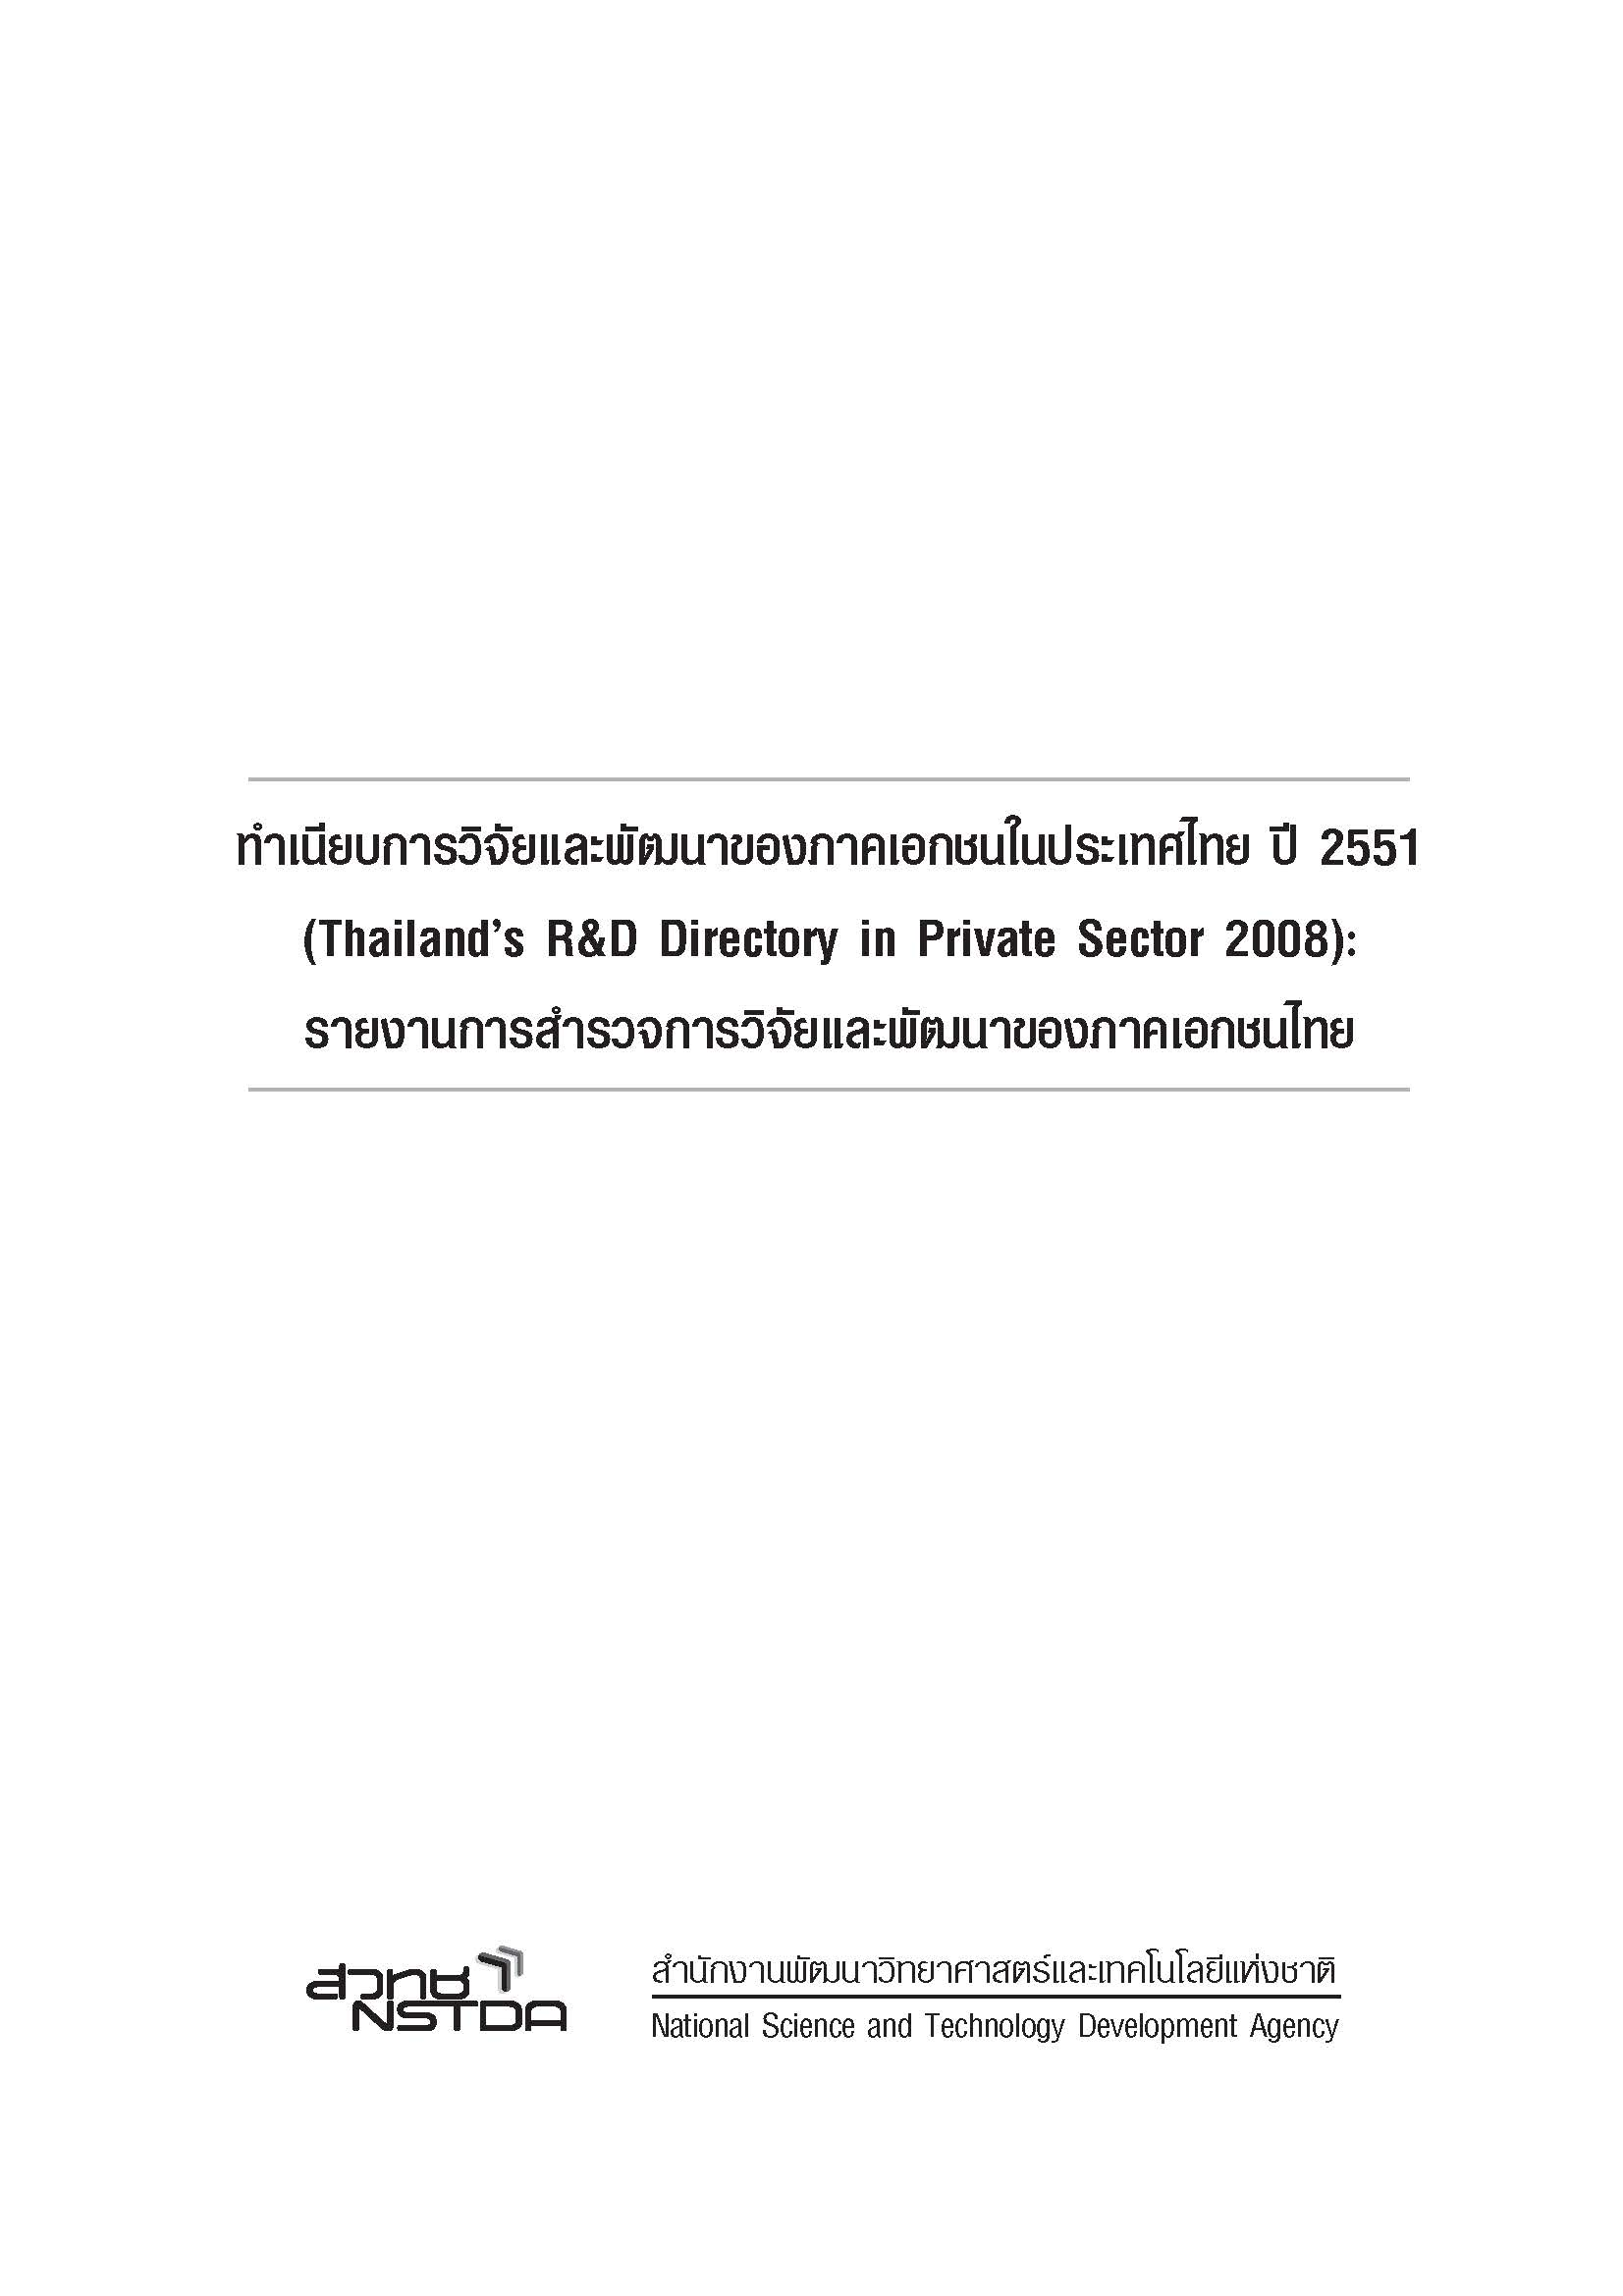 Thailandûs R&D Directory in Private Sector 2008(2551)